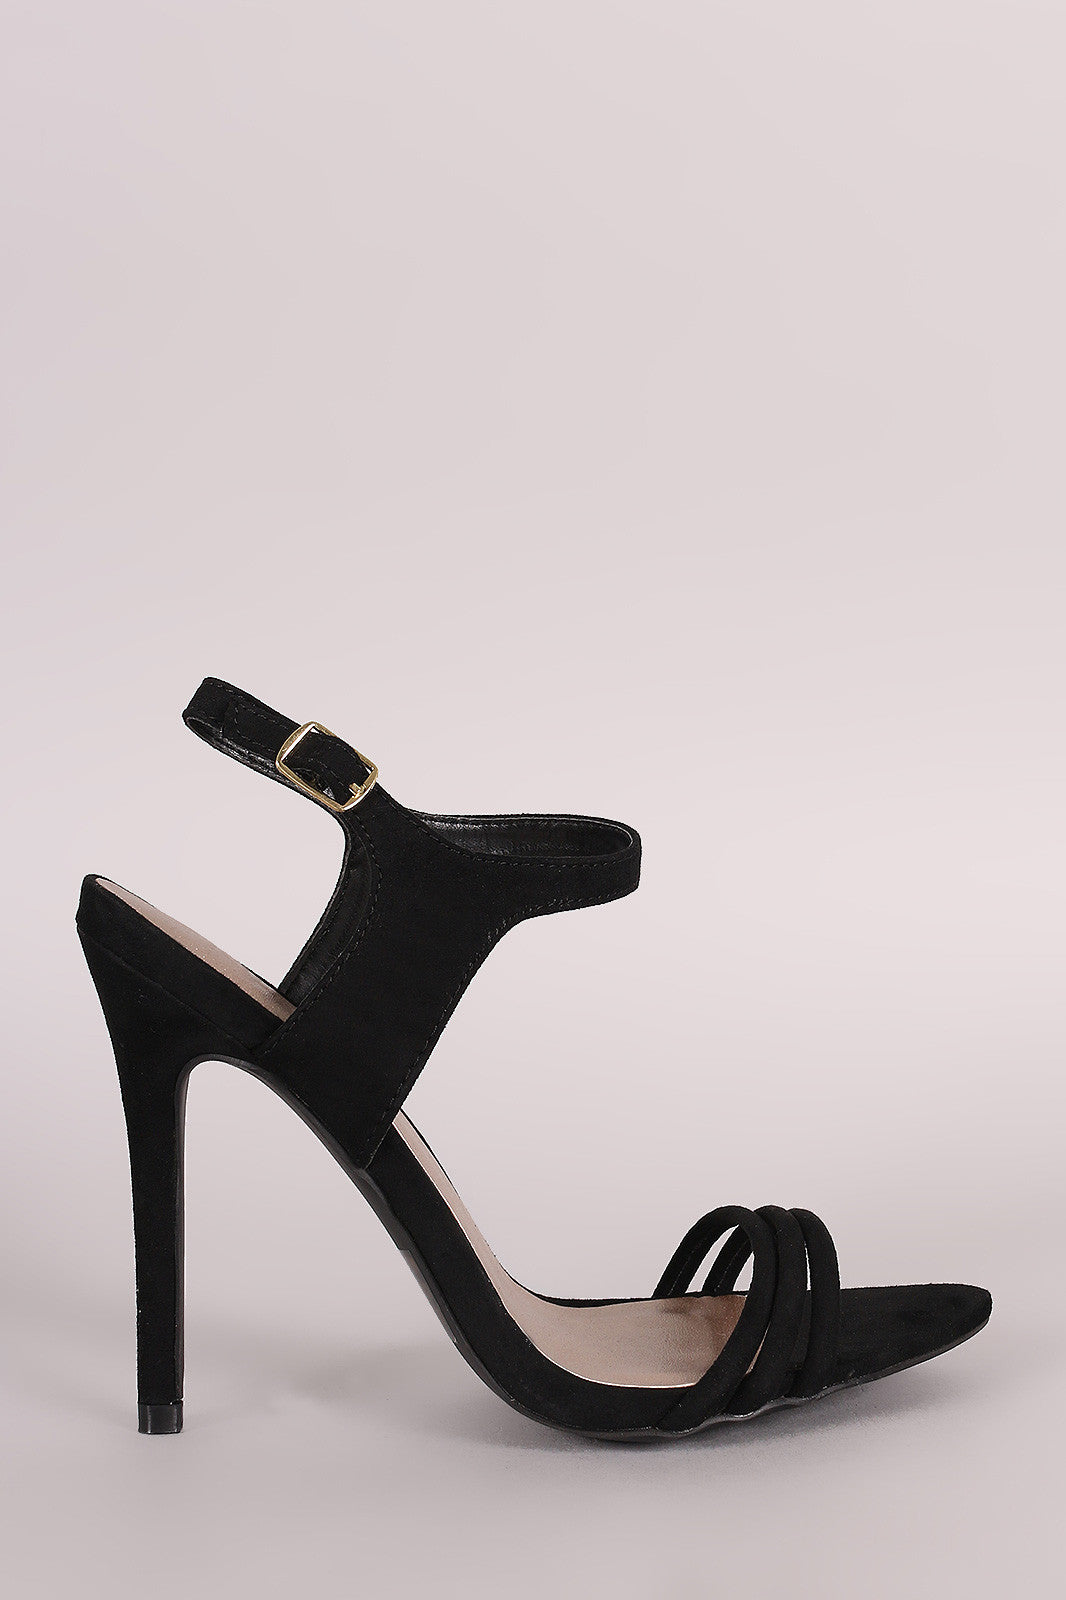 Qupid Suede Ankle Strap Sinlge Sole Heel - Thick 'N' Curvy Shop - 1